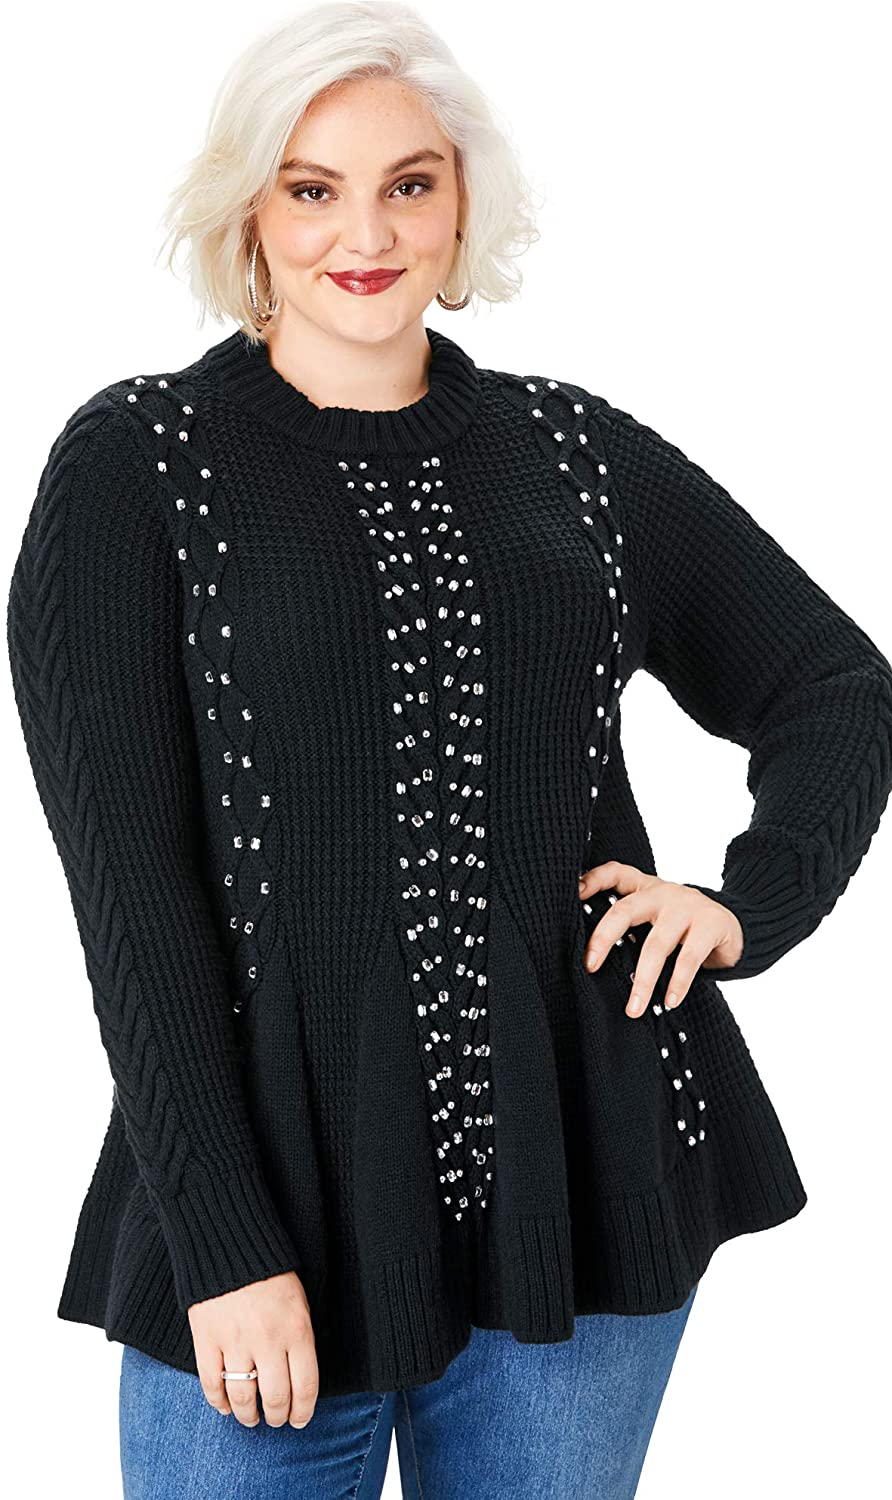 Plus Size Knit Ensemble 08